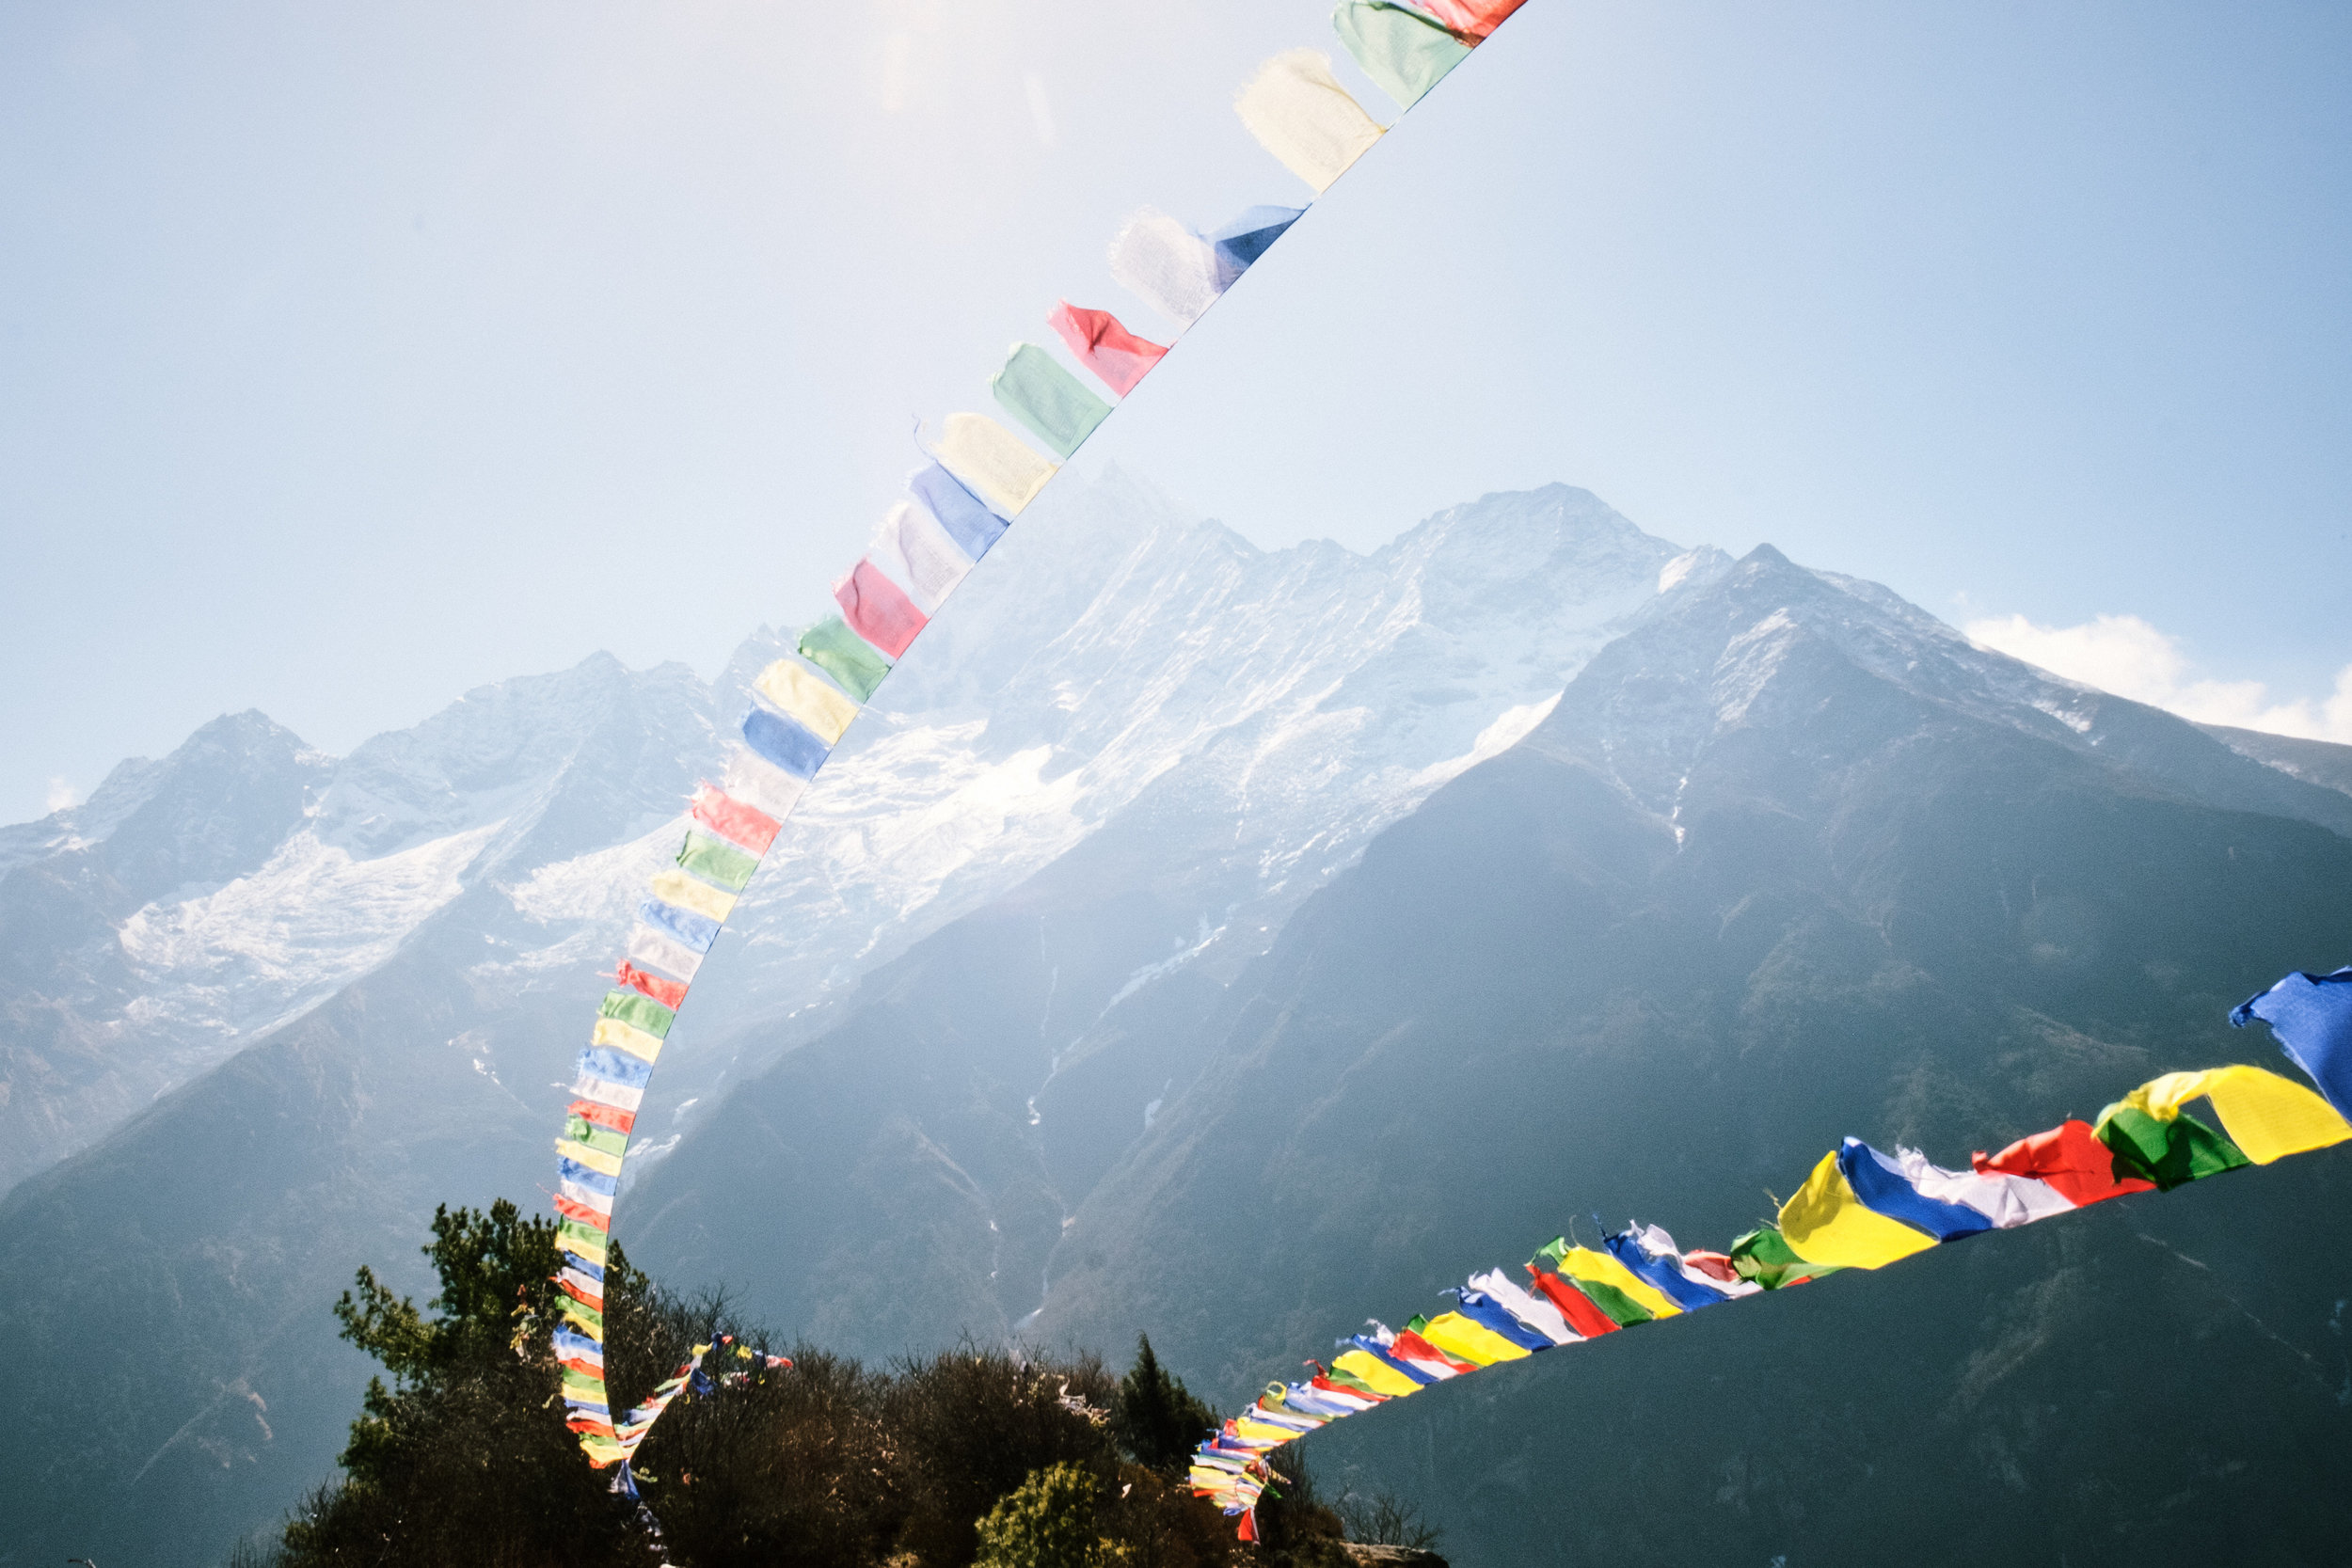 DAY 5:COMIN' ROUND THE MOUNTAIN - NAMCHE to DEBOCHEElevation: 3,445 - 3,735 mDistance: 12 km